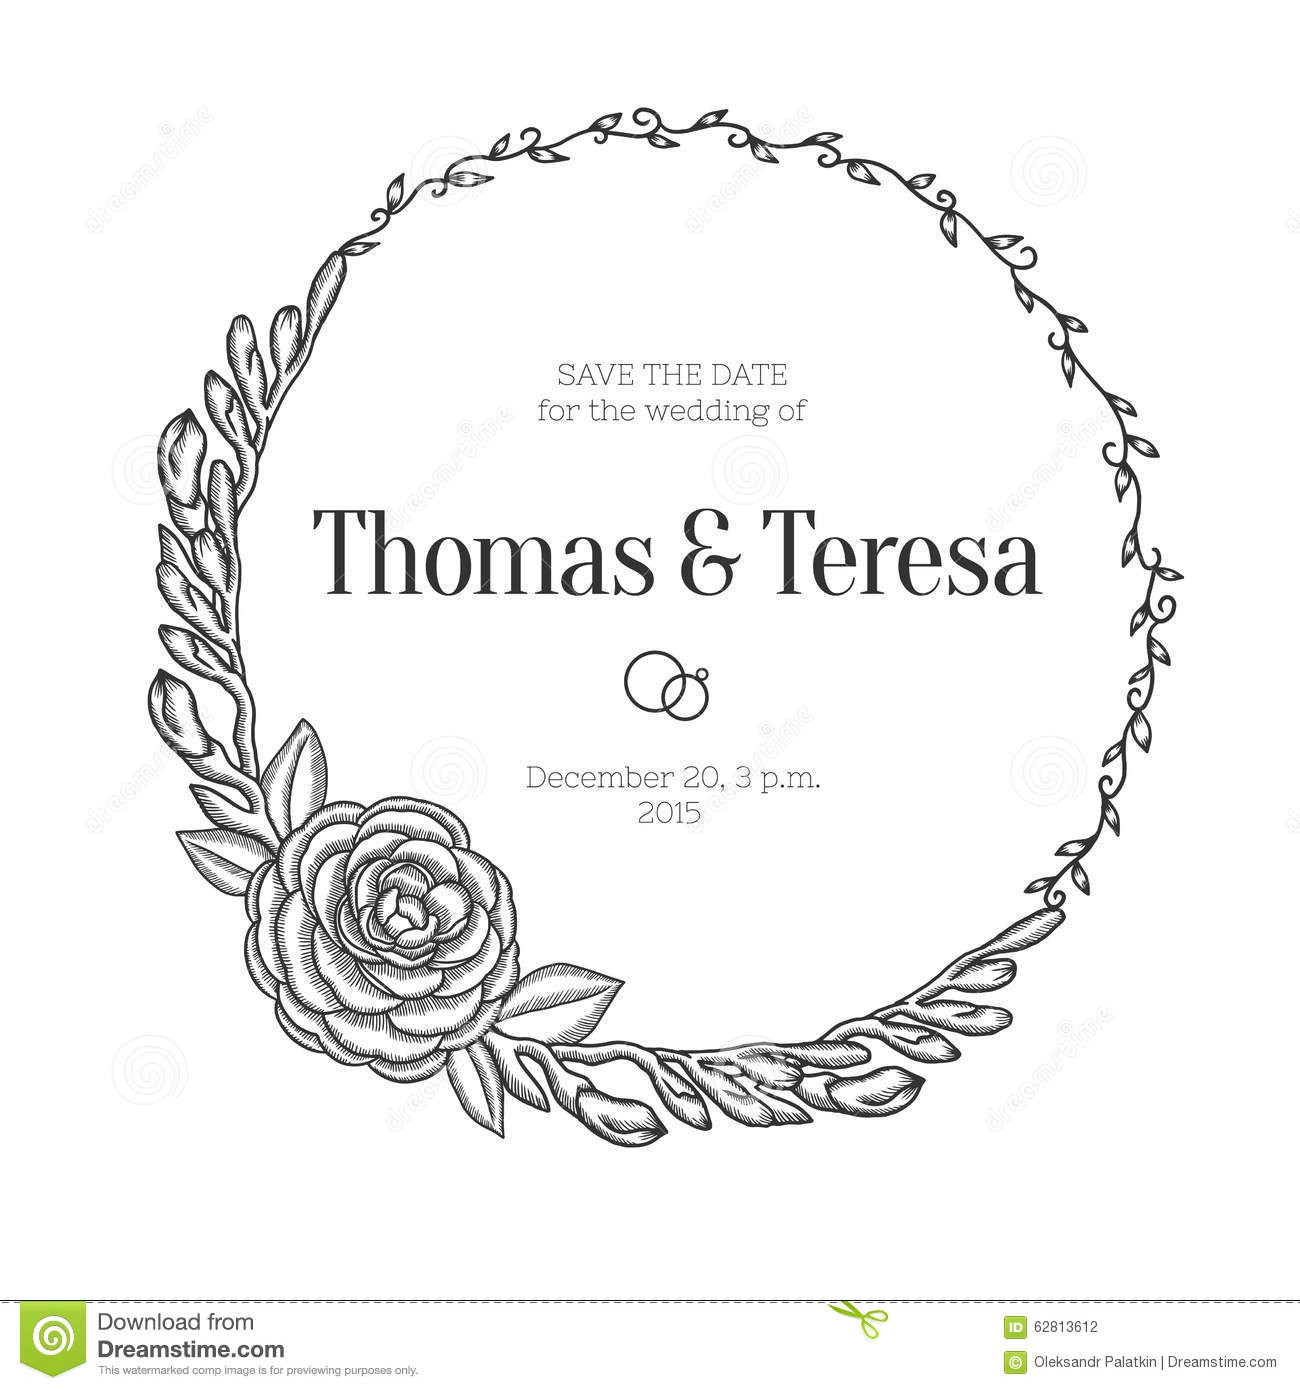 Black and white floral wreath stock vector image 65241515 - Vintage Floral Wreath Wedding Invitation Stock Vector 1300x1390